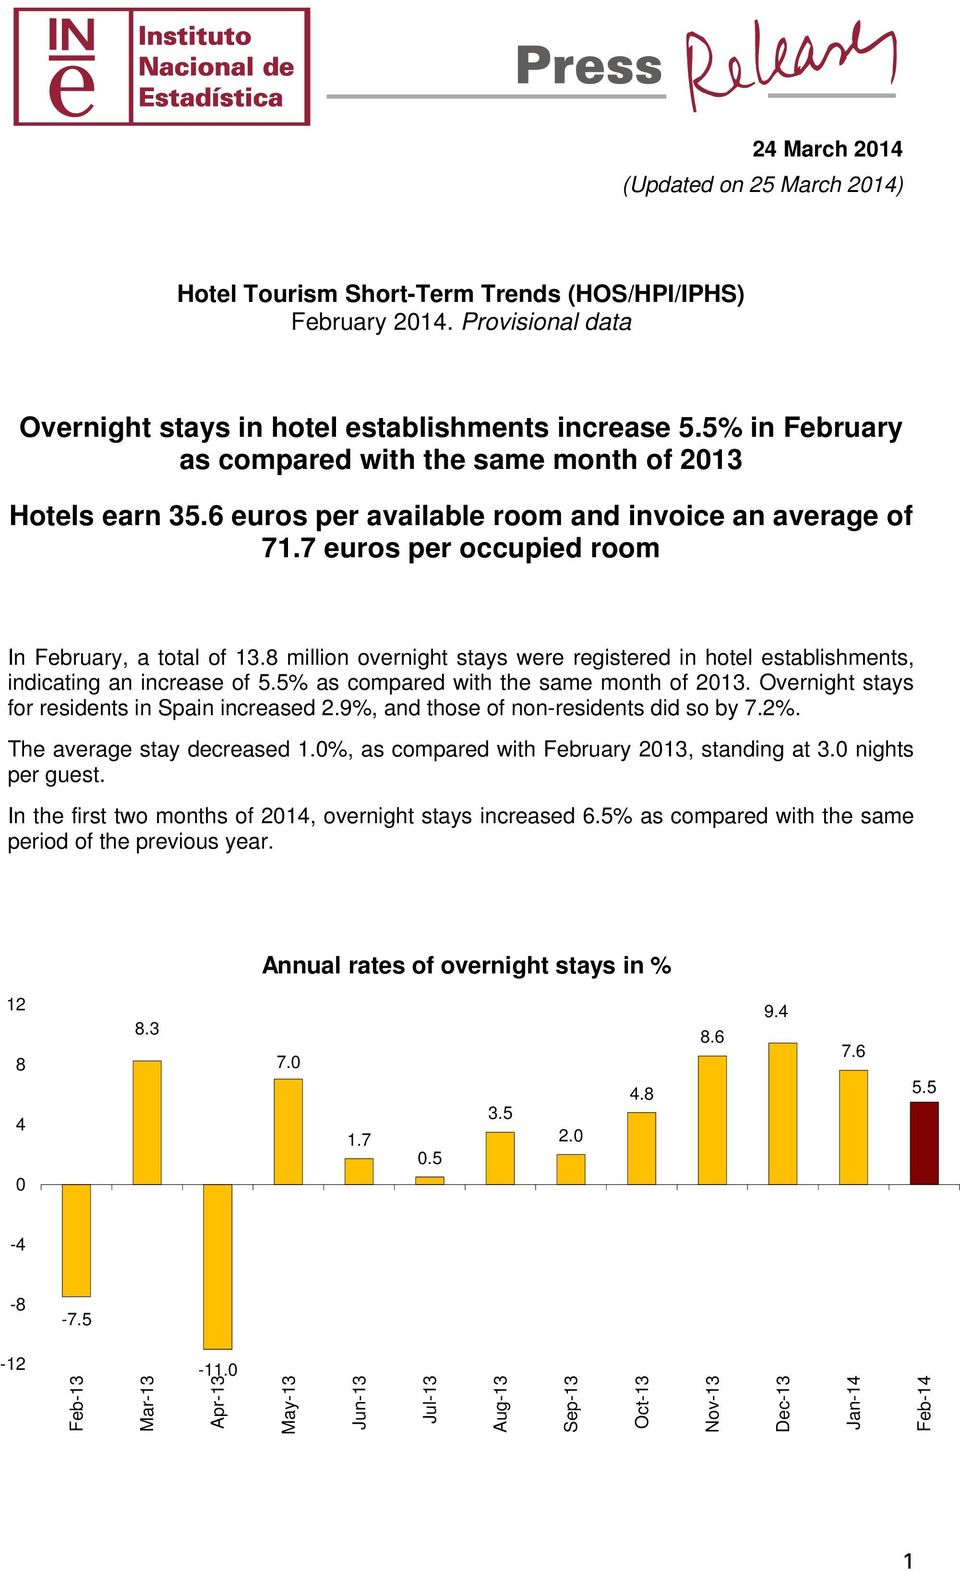 8 million overnight stays were registered in hotel establishments, indicating an increase of 5.5% as compared with the same month of 213. Overnight stays for residents in Spain increased 2.